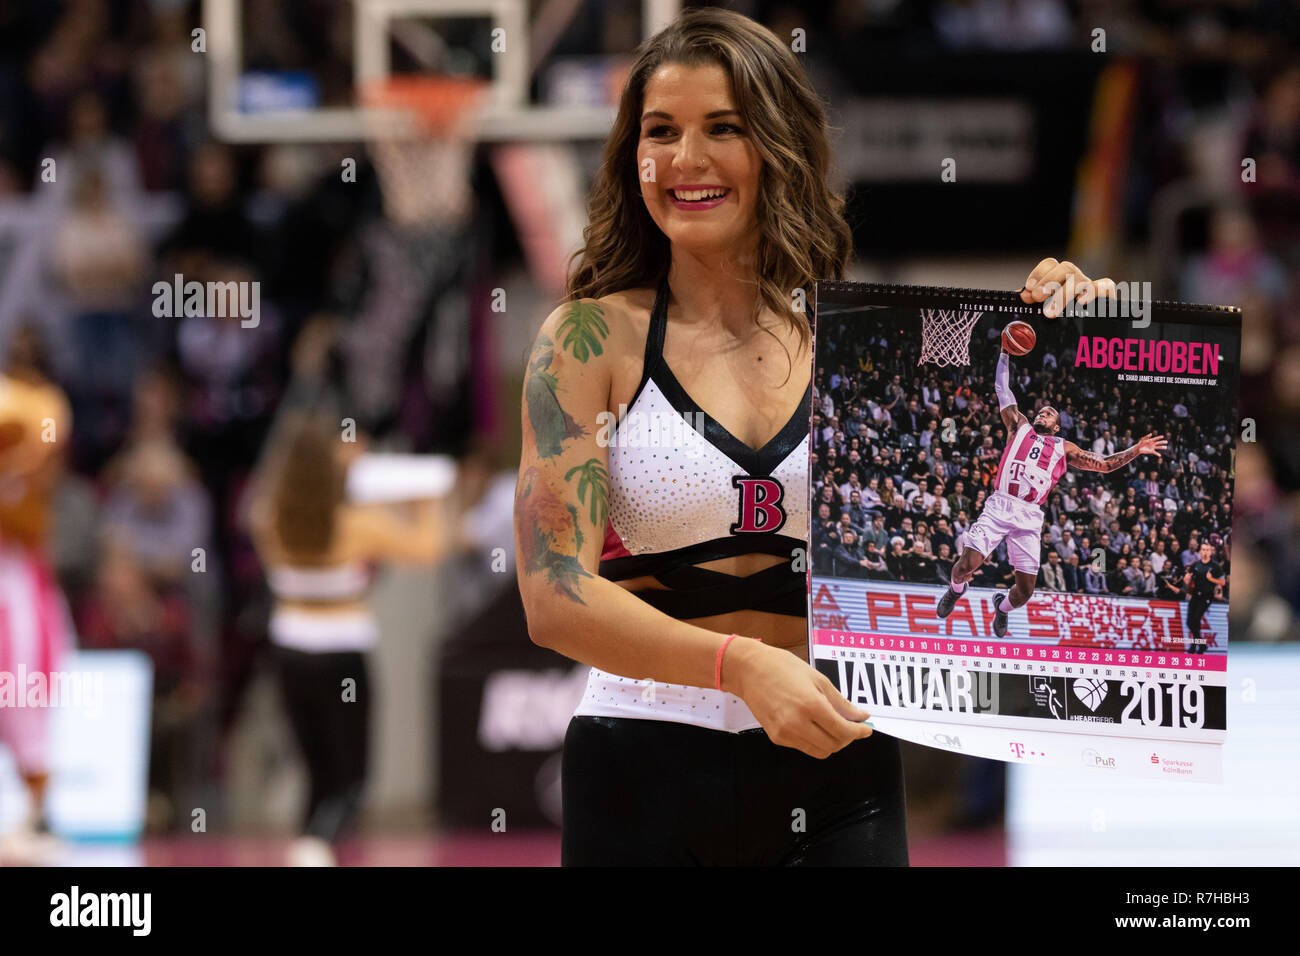 Bonn, Germany. 10th December 2018. Basketball, BBL, Telekom Baskets Bonn vs EWE Baskets Oldenburg: Cheerleader Credit: Juergen Schwarz/Alamy Live News - Stock Image